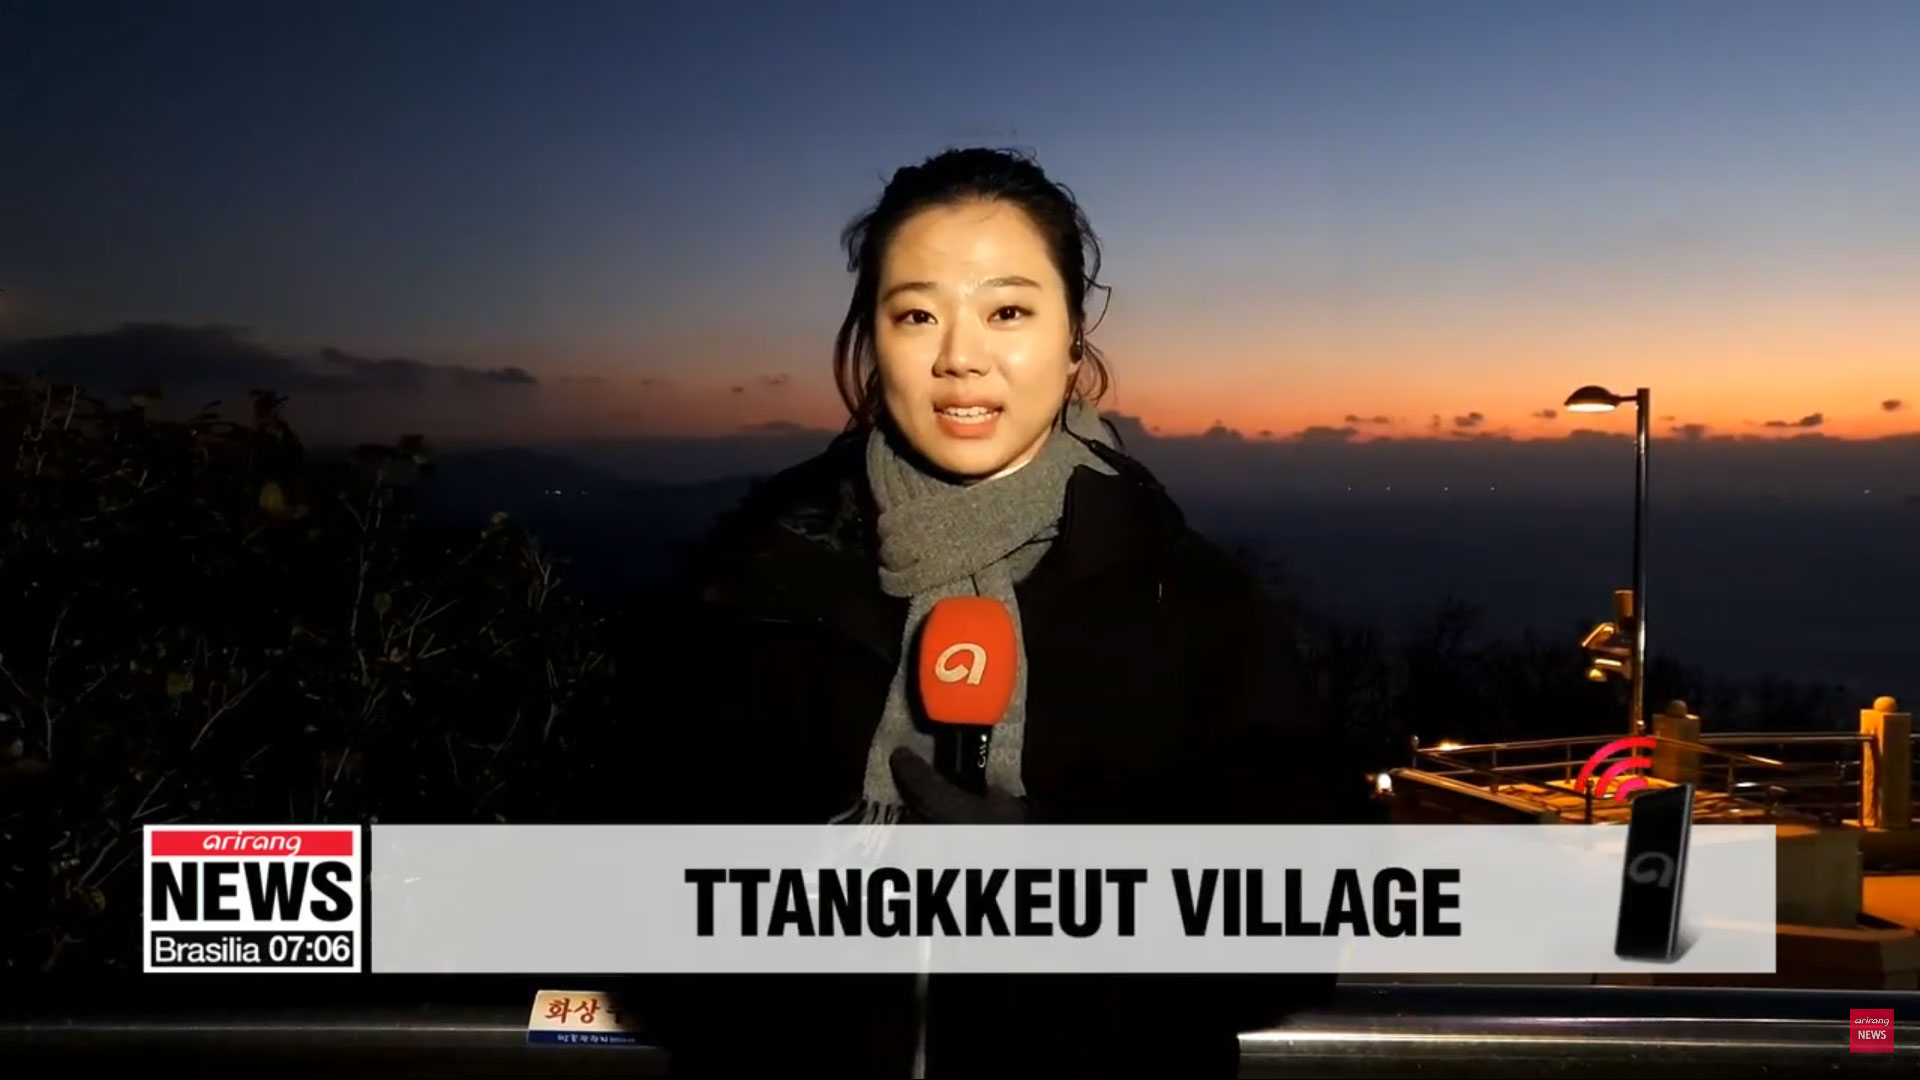 Celebrating the last sunset of 2018 in Ttangkkeut Village, Haenam-gun